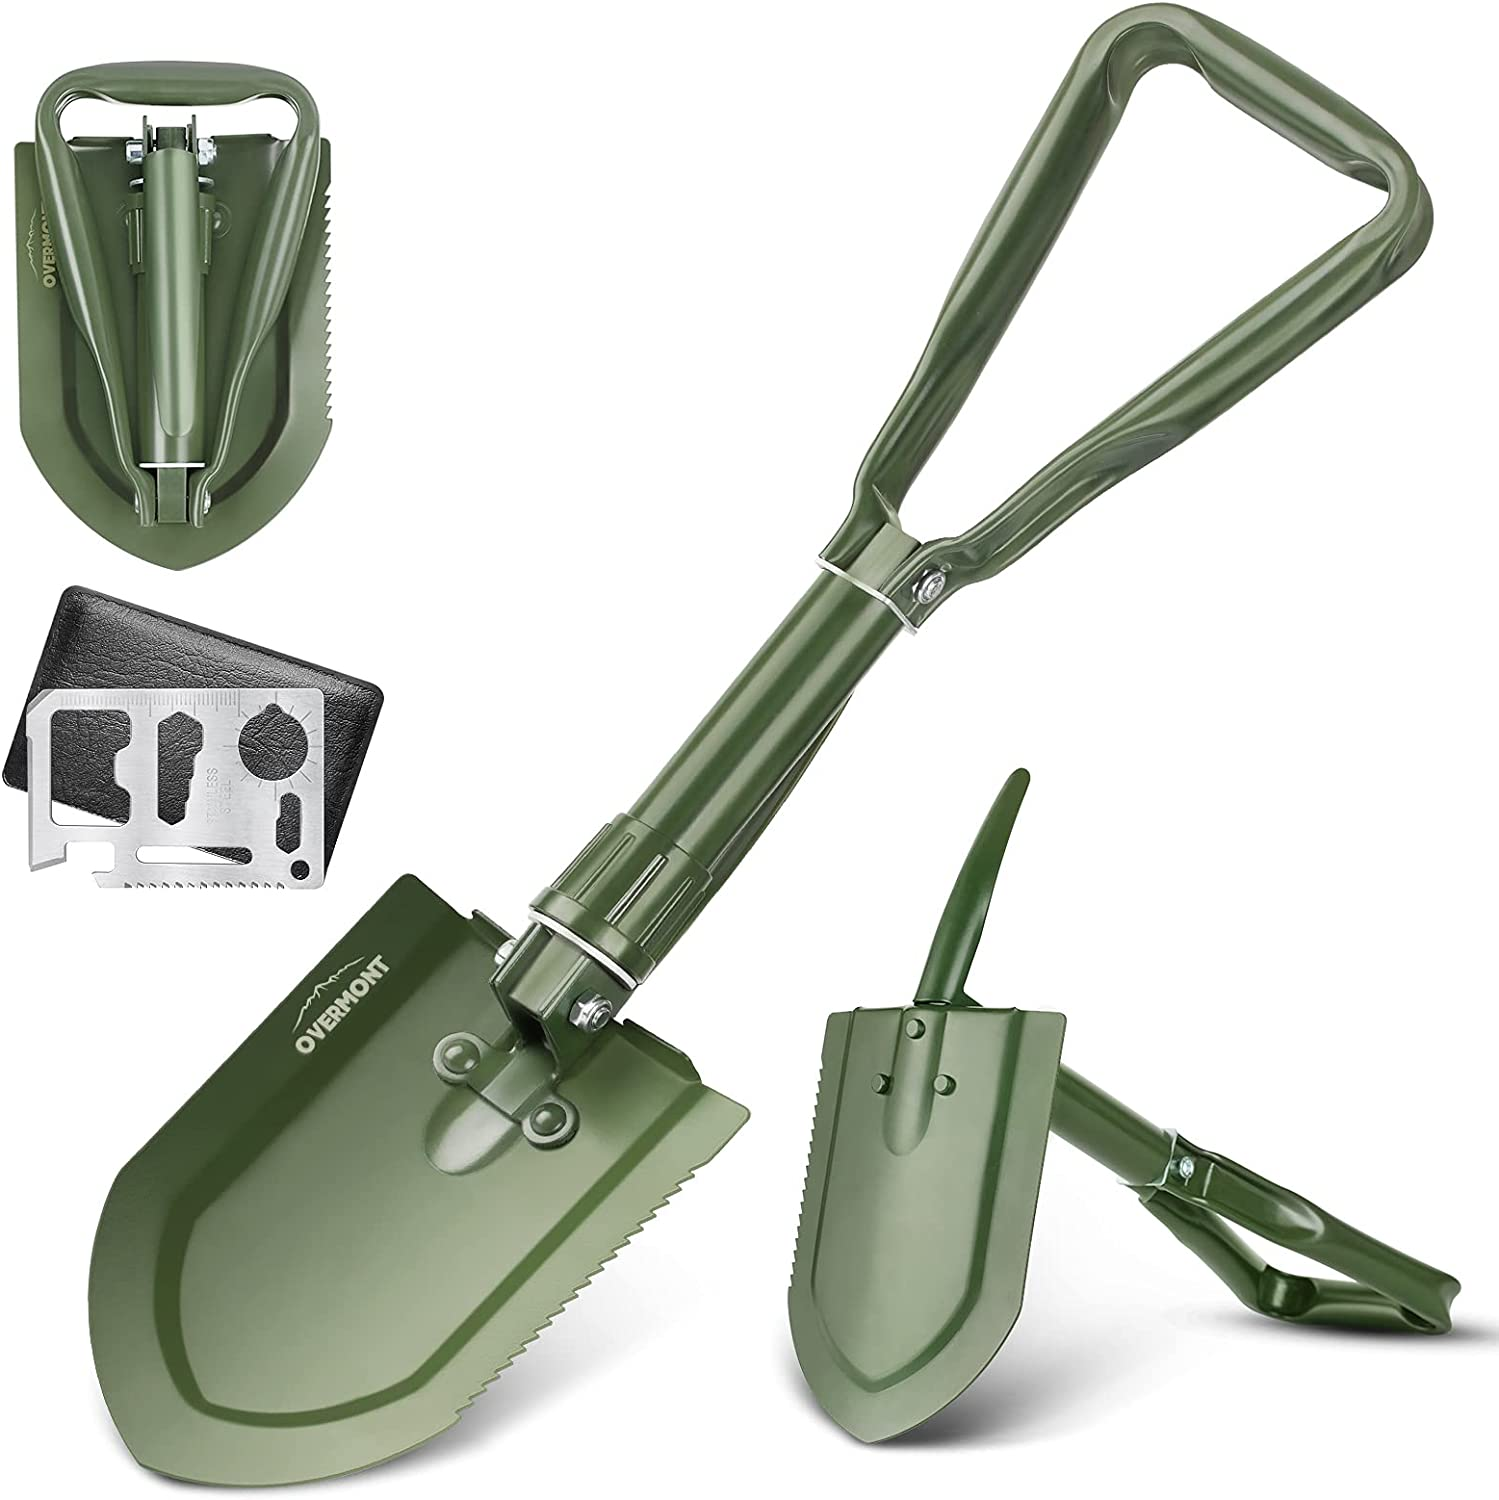 Overmont Military Folding Product Super-cheap Camping Shovel Entre High Carbon Steel